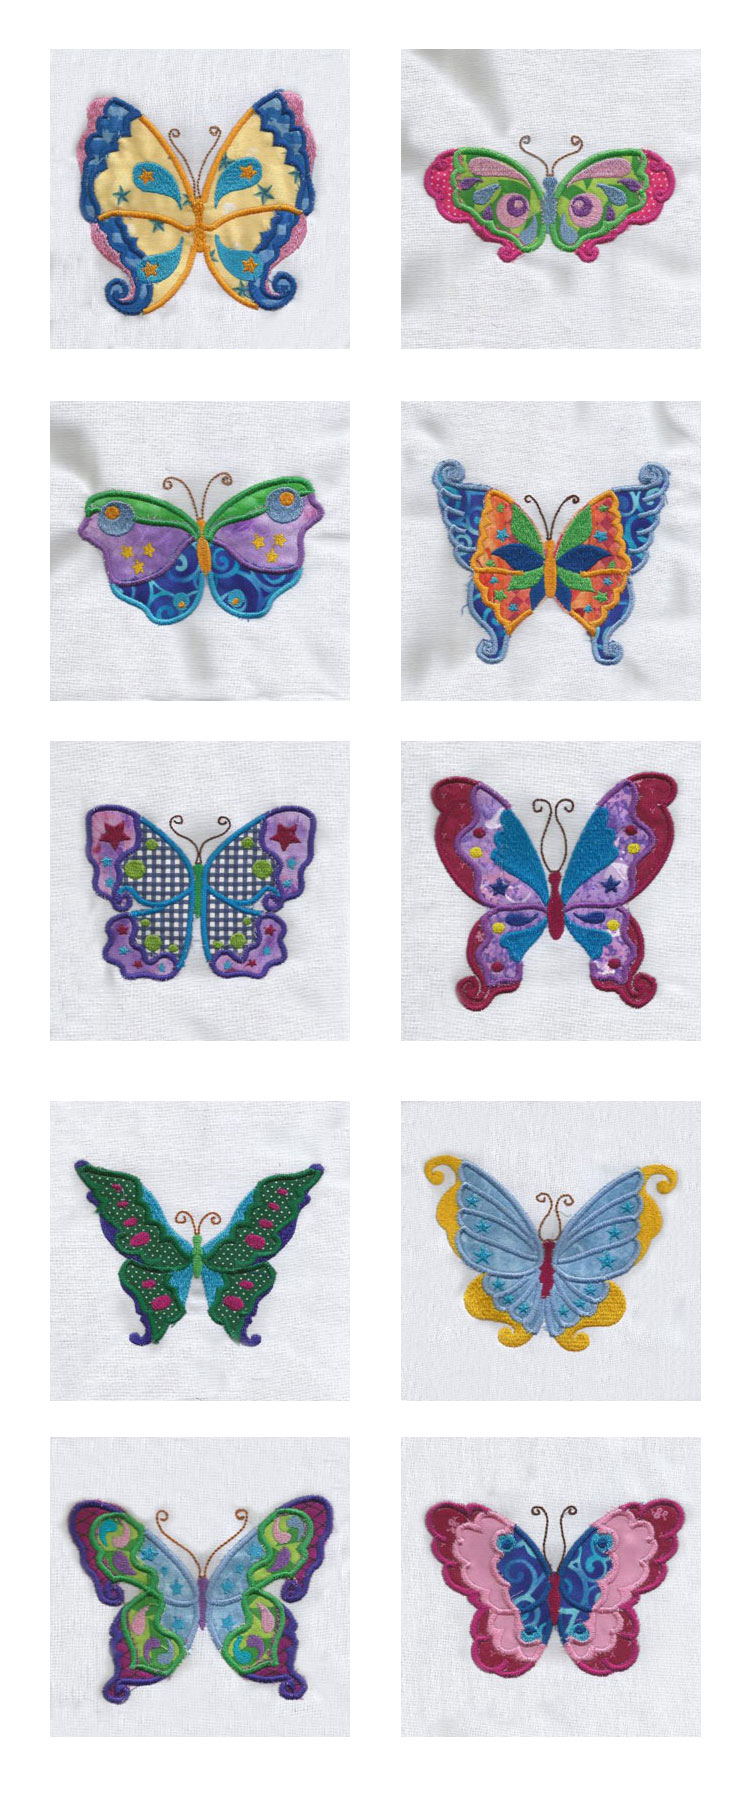 Colorful Applique Butterflies Embroidery Machine Design Details